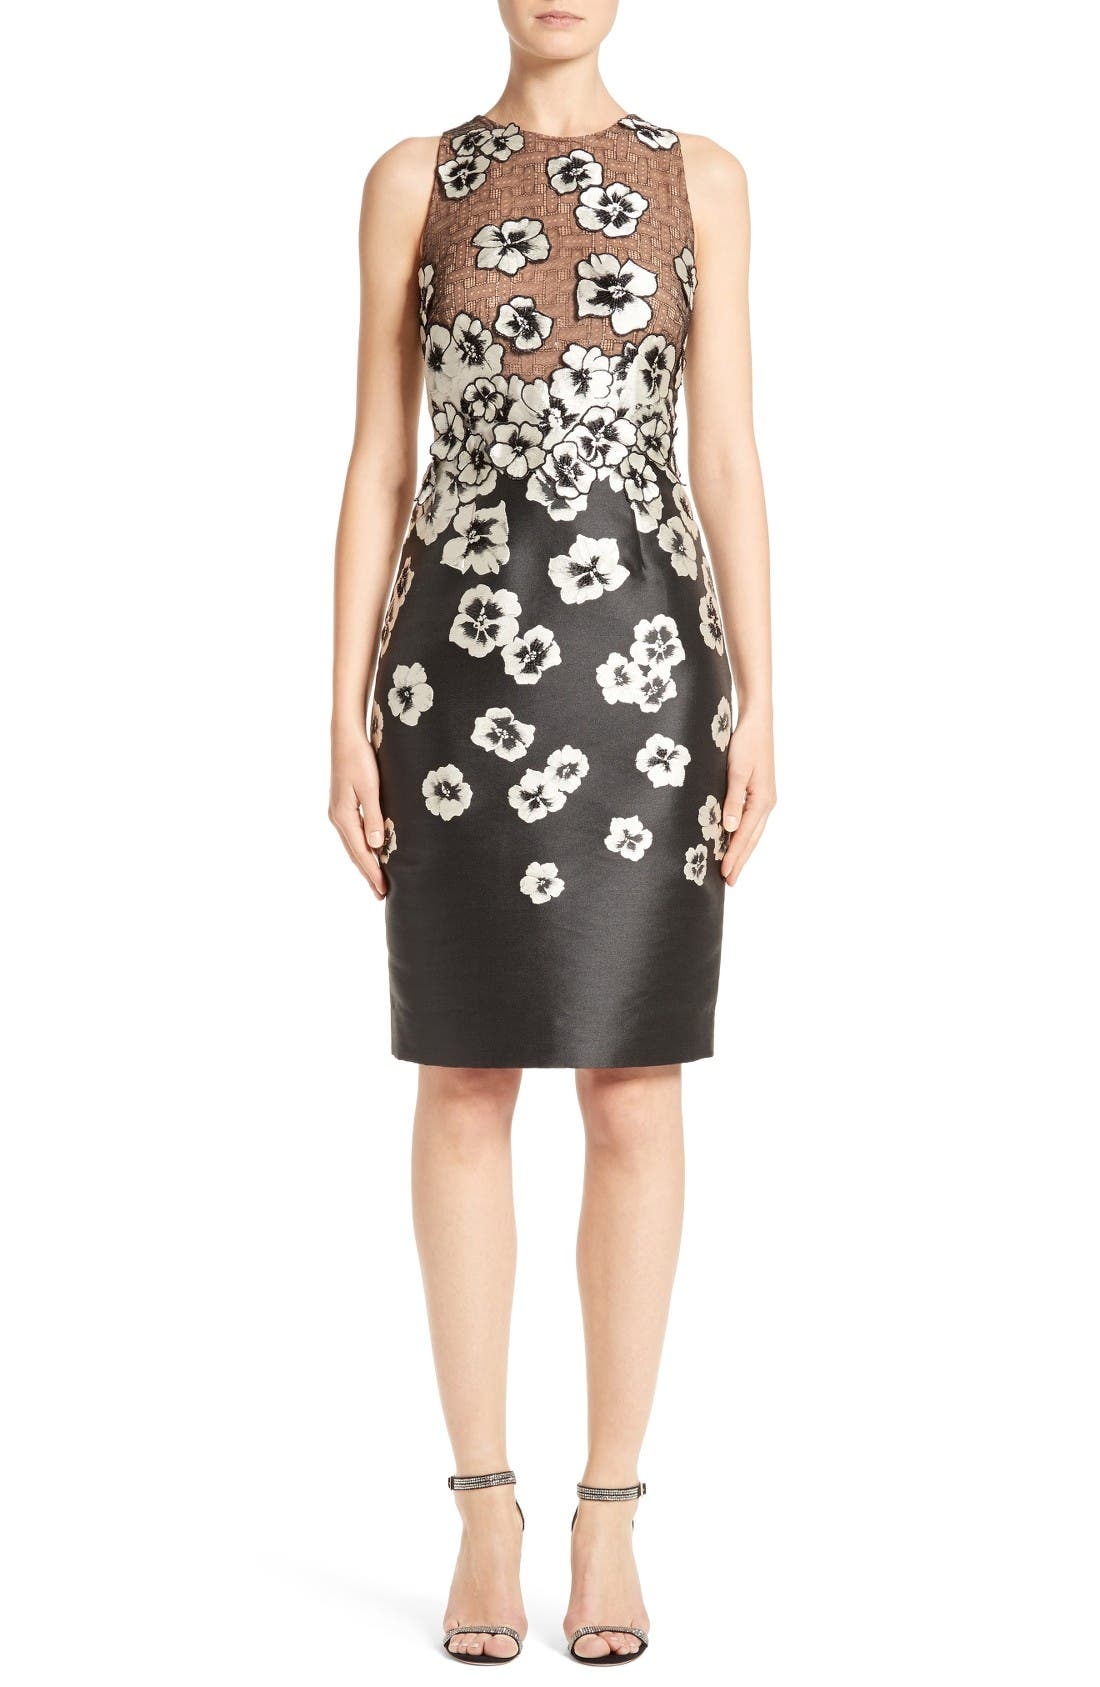 Carmen Marc Valvo Couture Floral Appliqué Sheath Dress